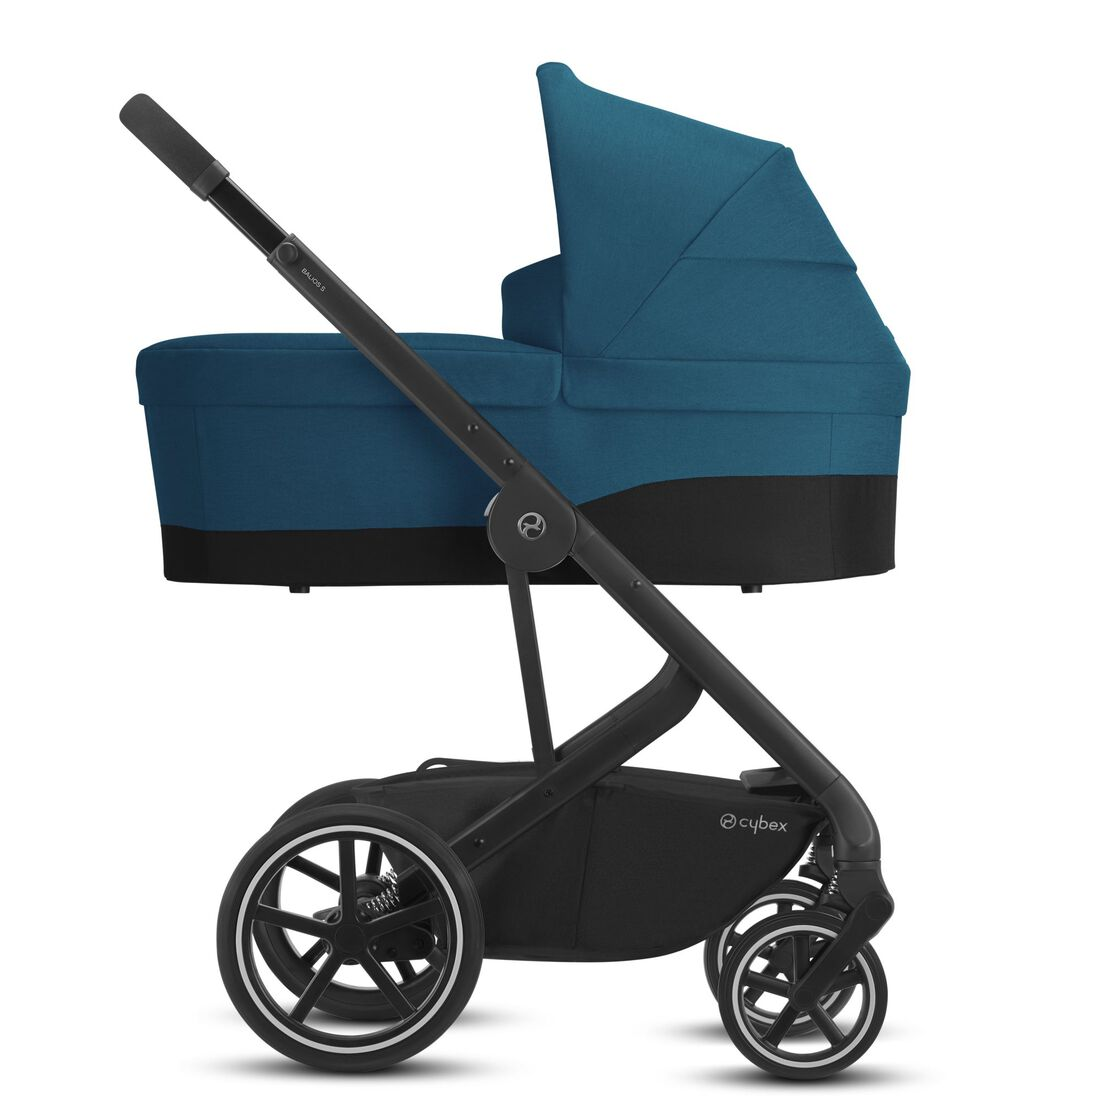 CYBEX Balios S Lux - River Blue (Black Frame) in River Blue (Black Frame) large image number 2